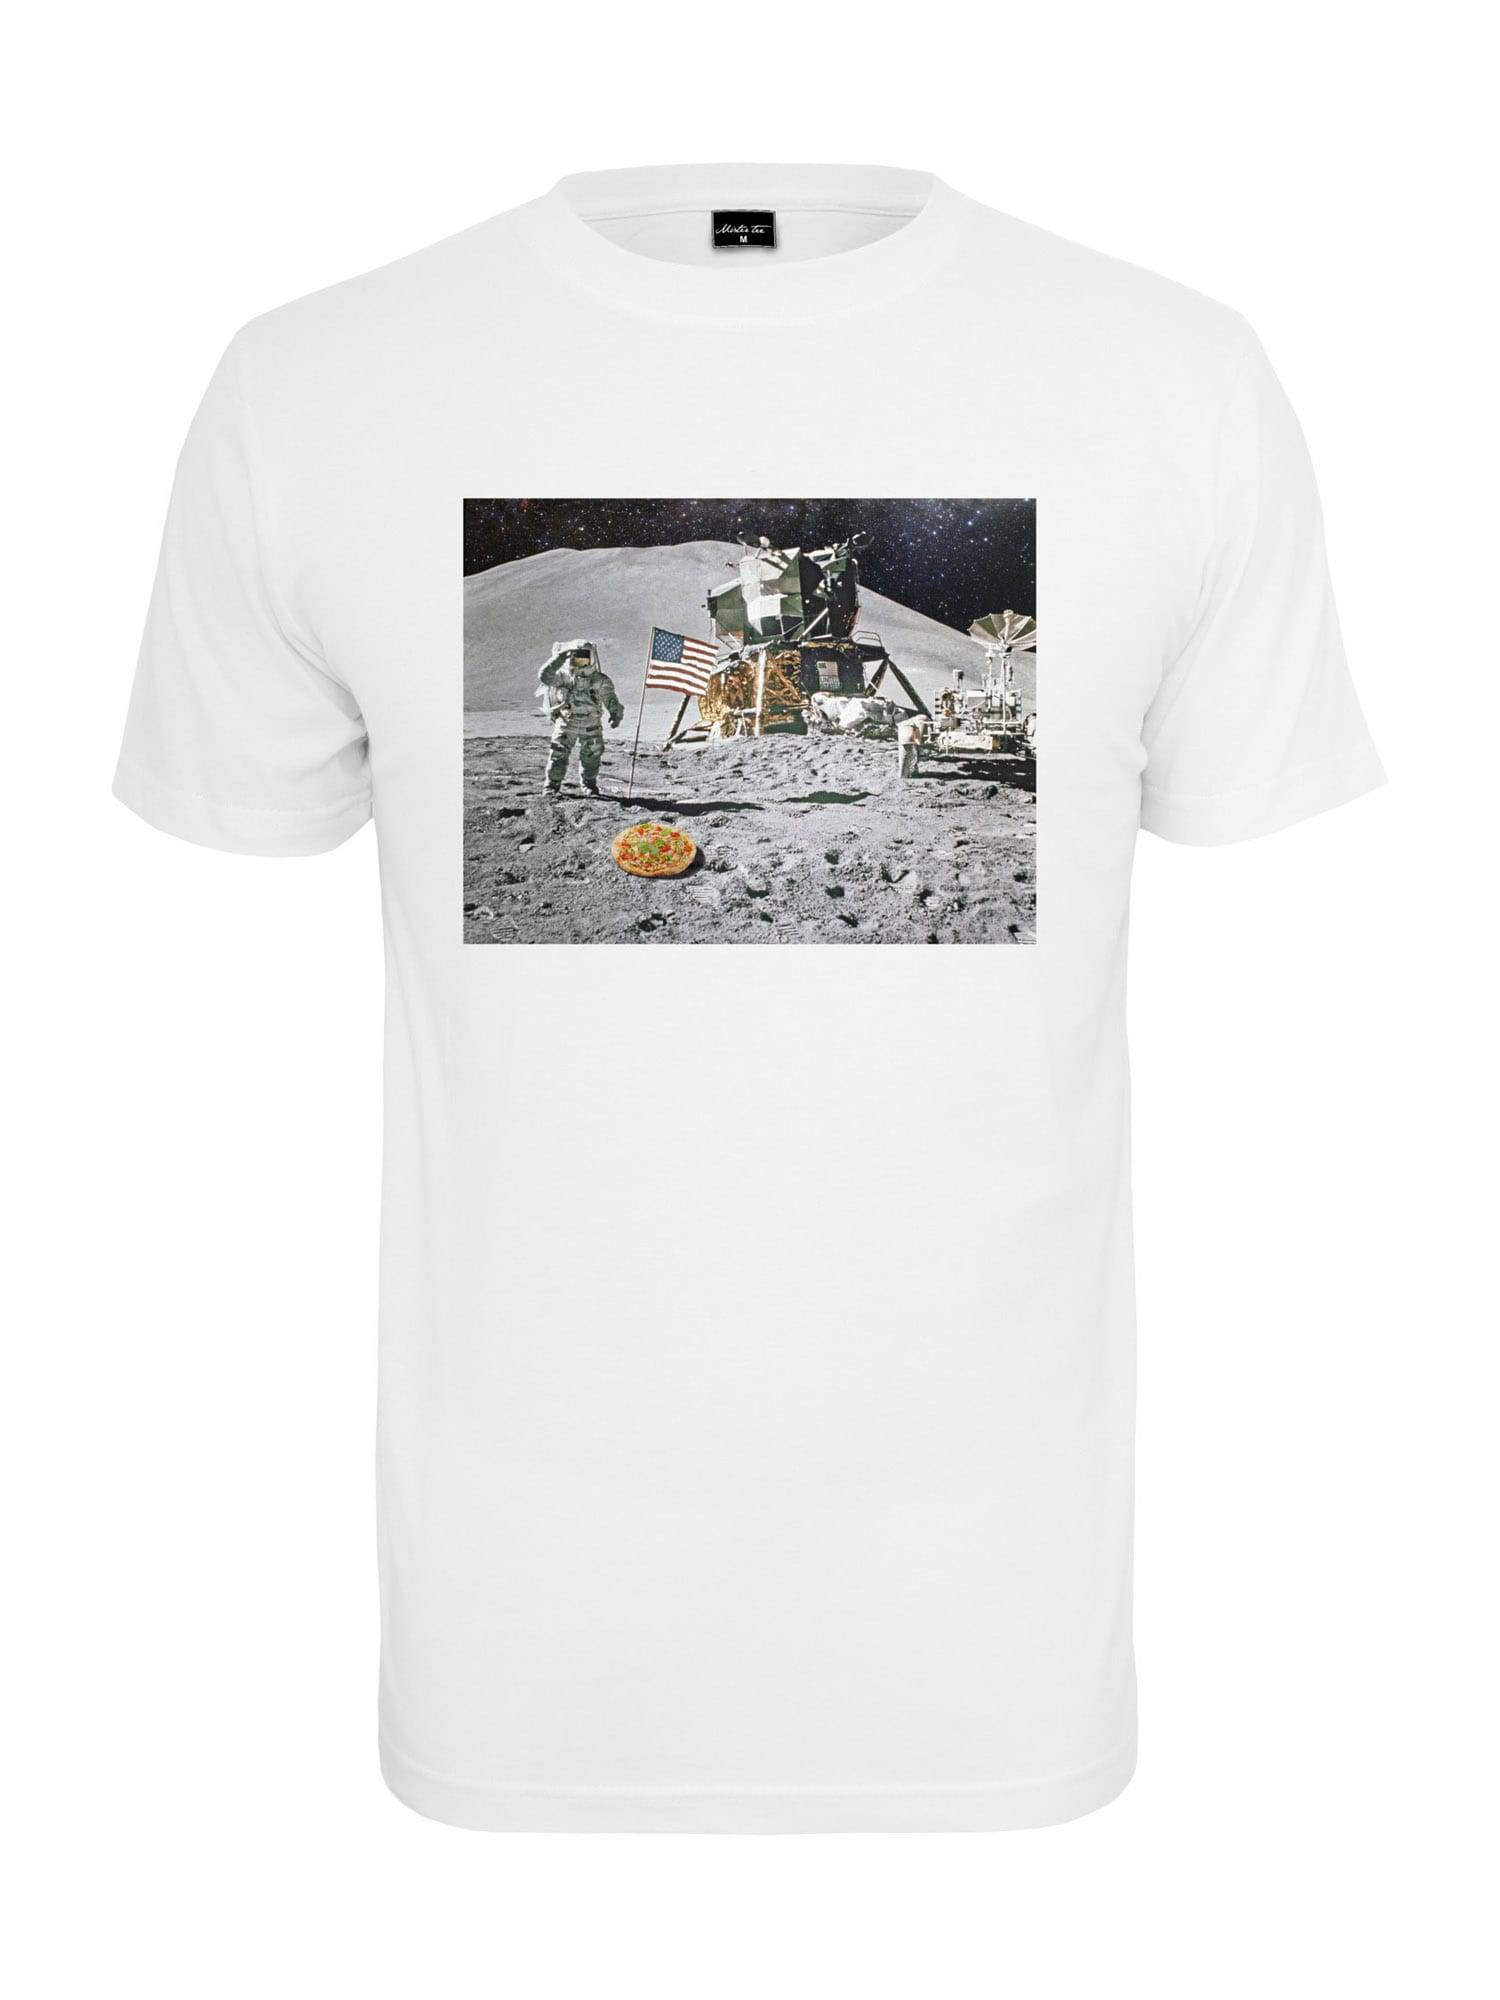 Tee T-Shirt 'Pizza Moon'  - Blanc - Taille: M - male